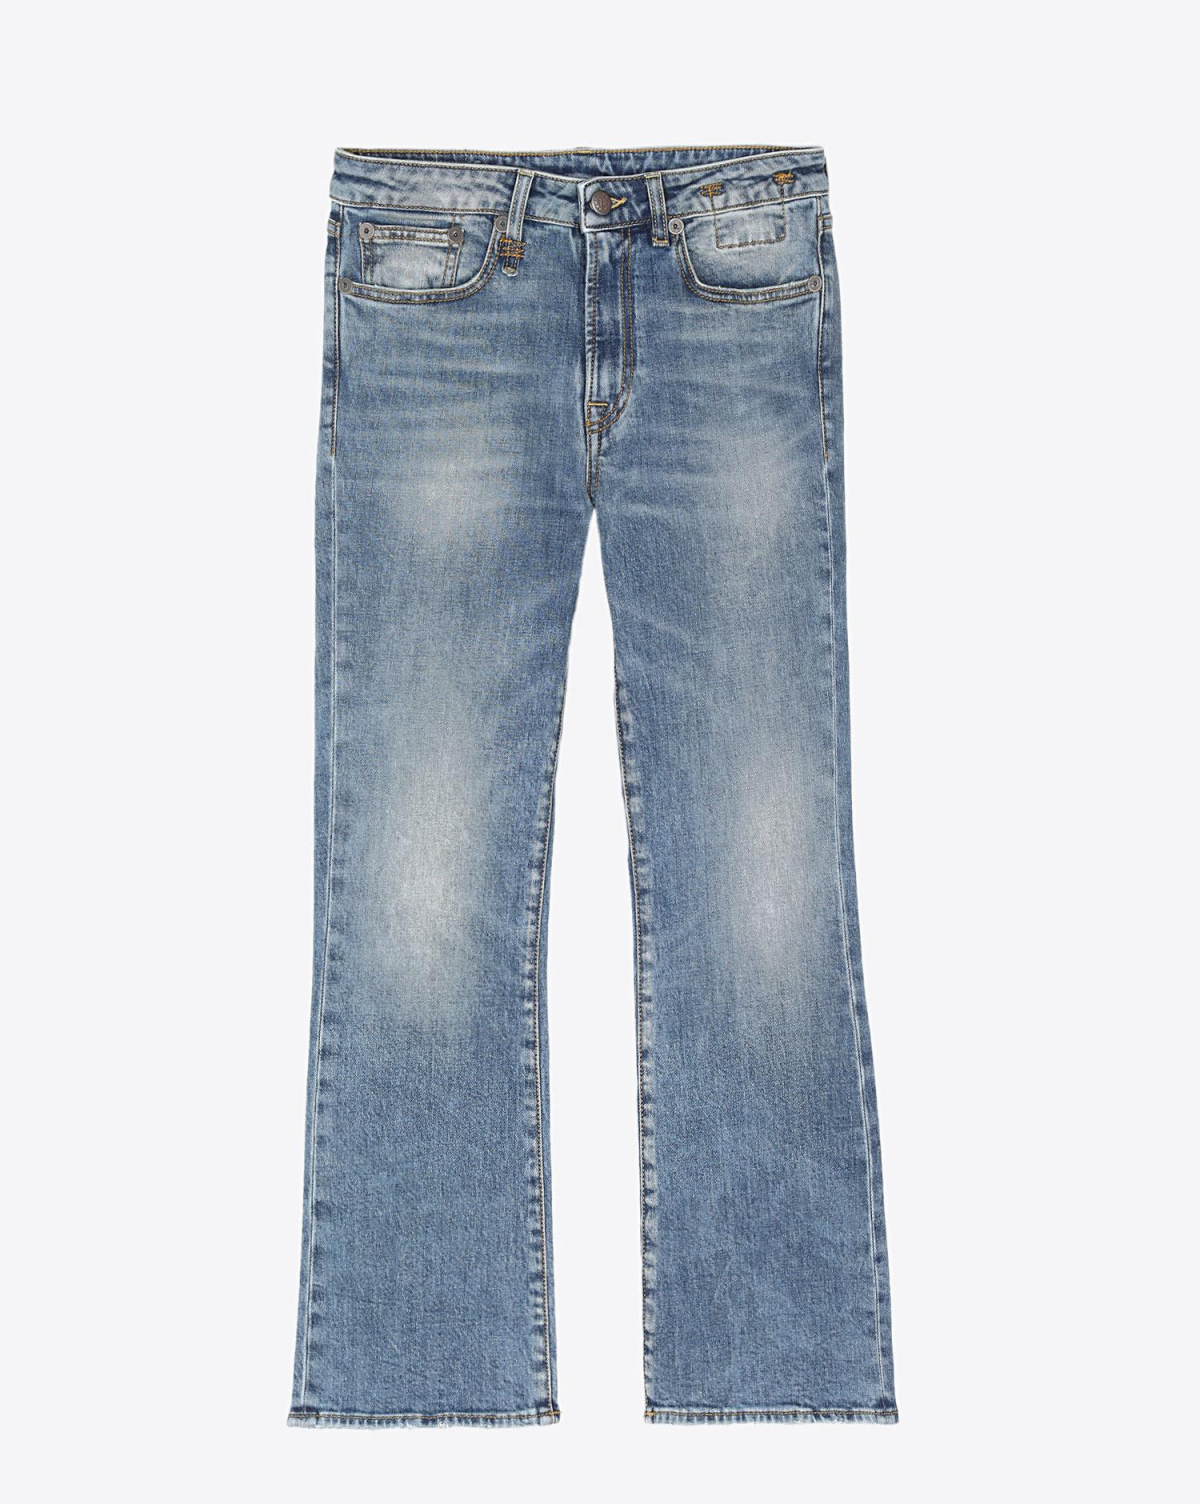 R13 Denim Collection Kick Fit - Jasper Stretch